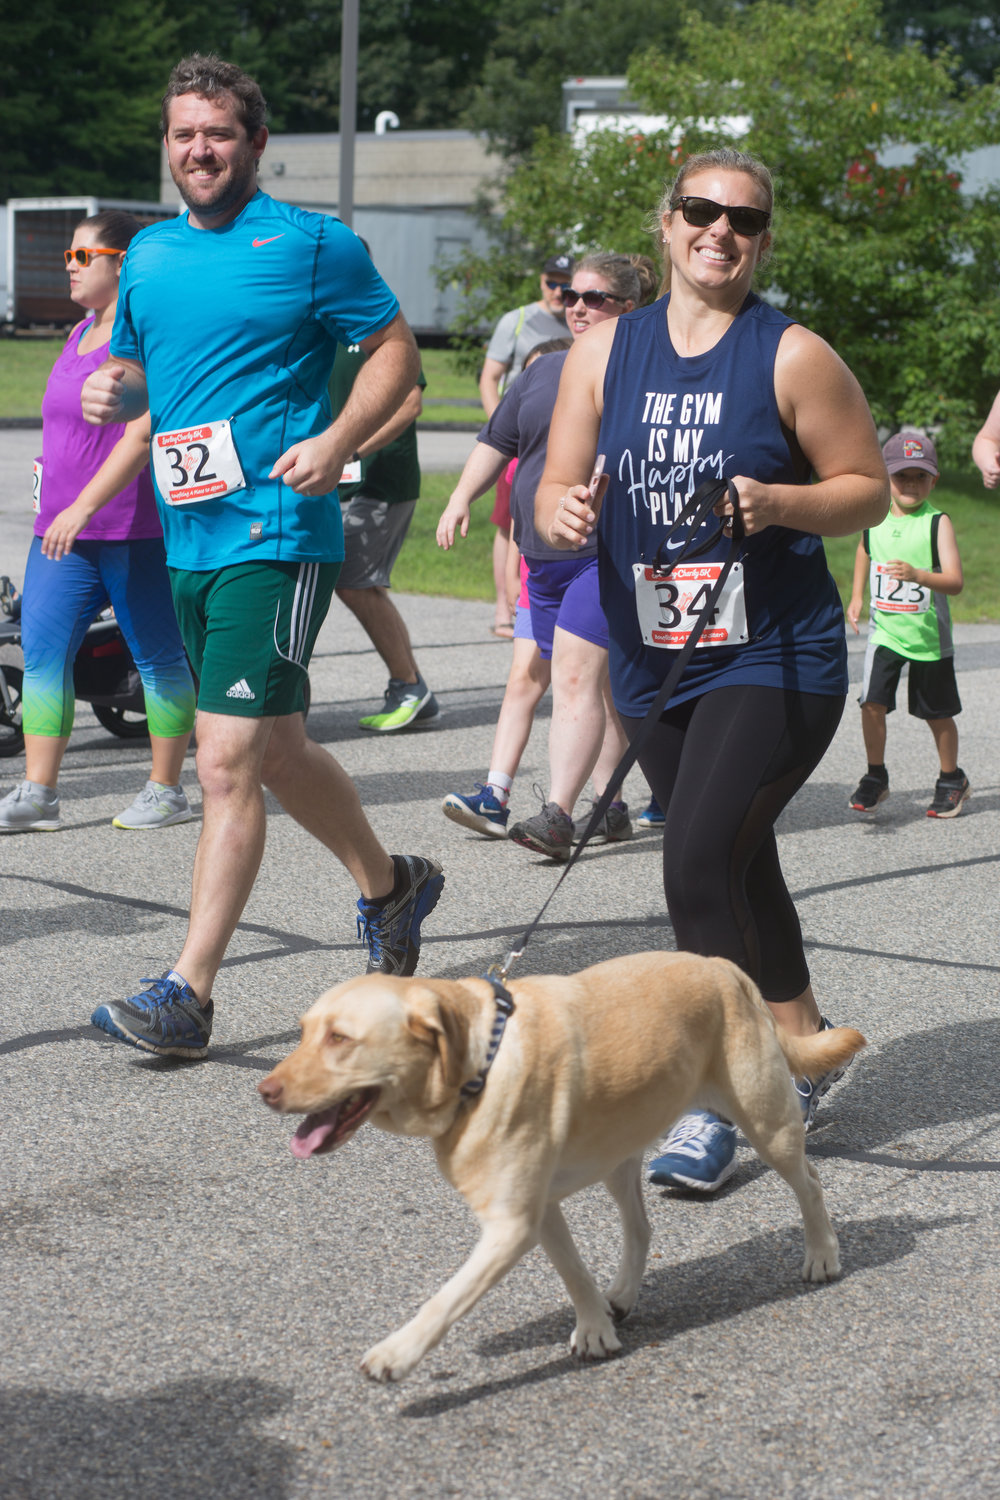 SpurlingCharity5k2018-23.jpg